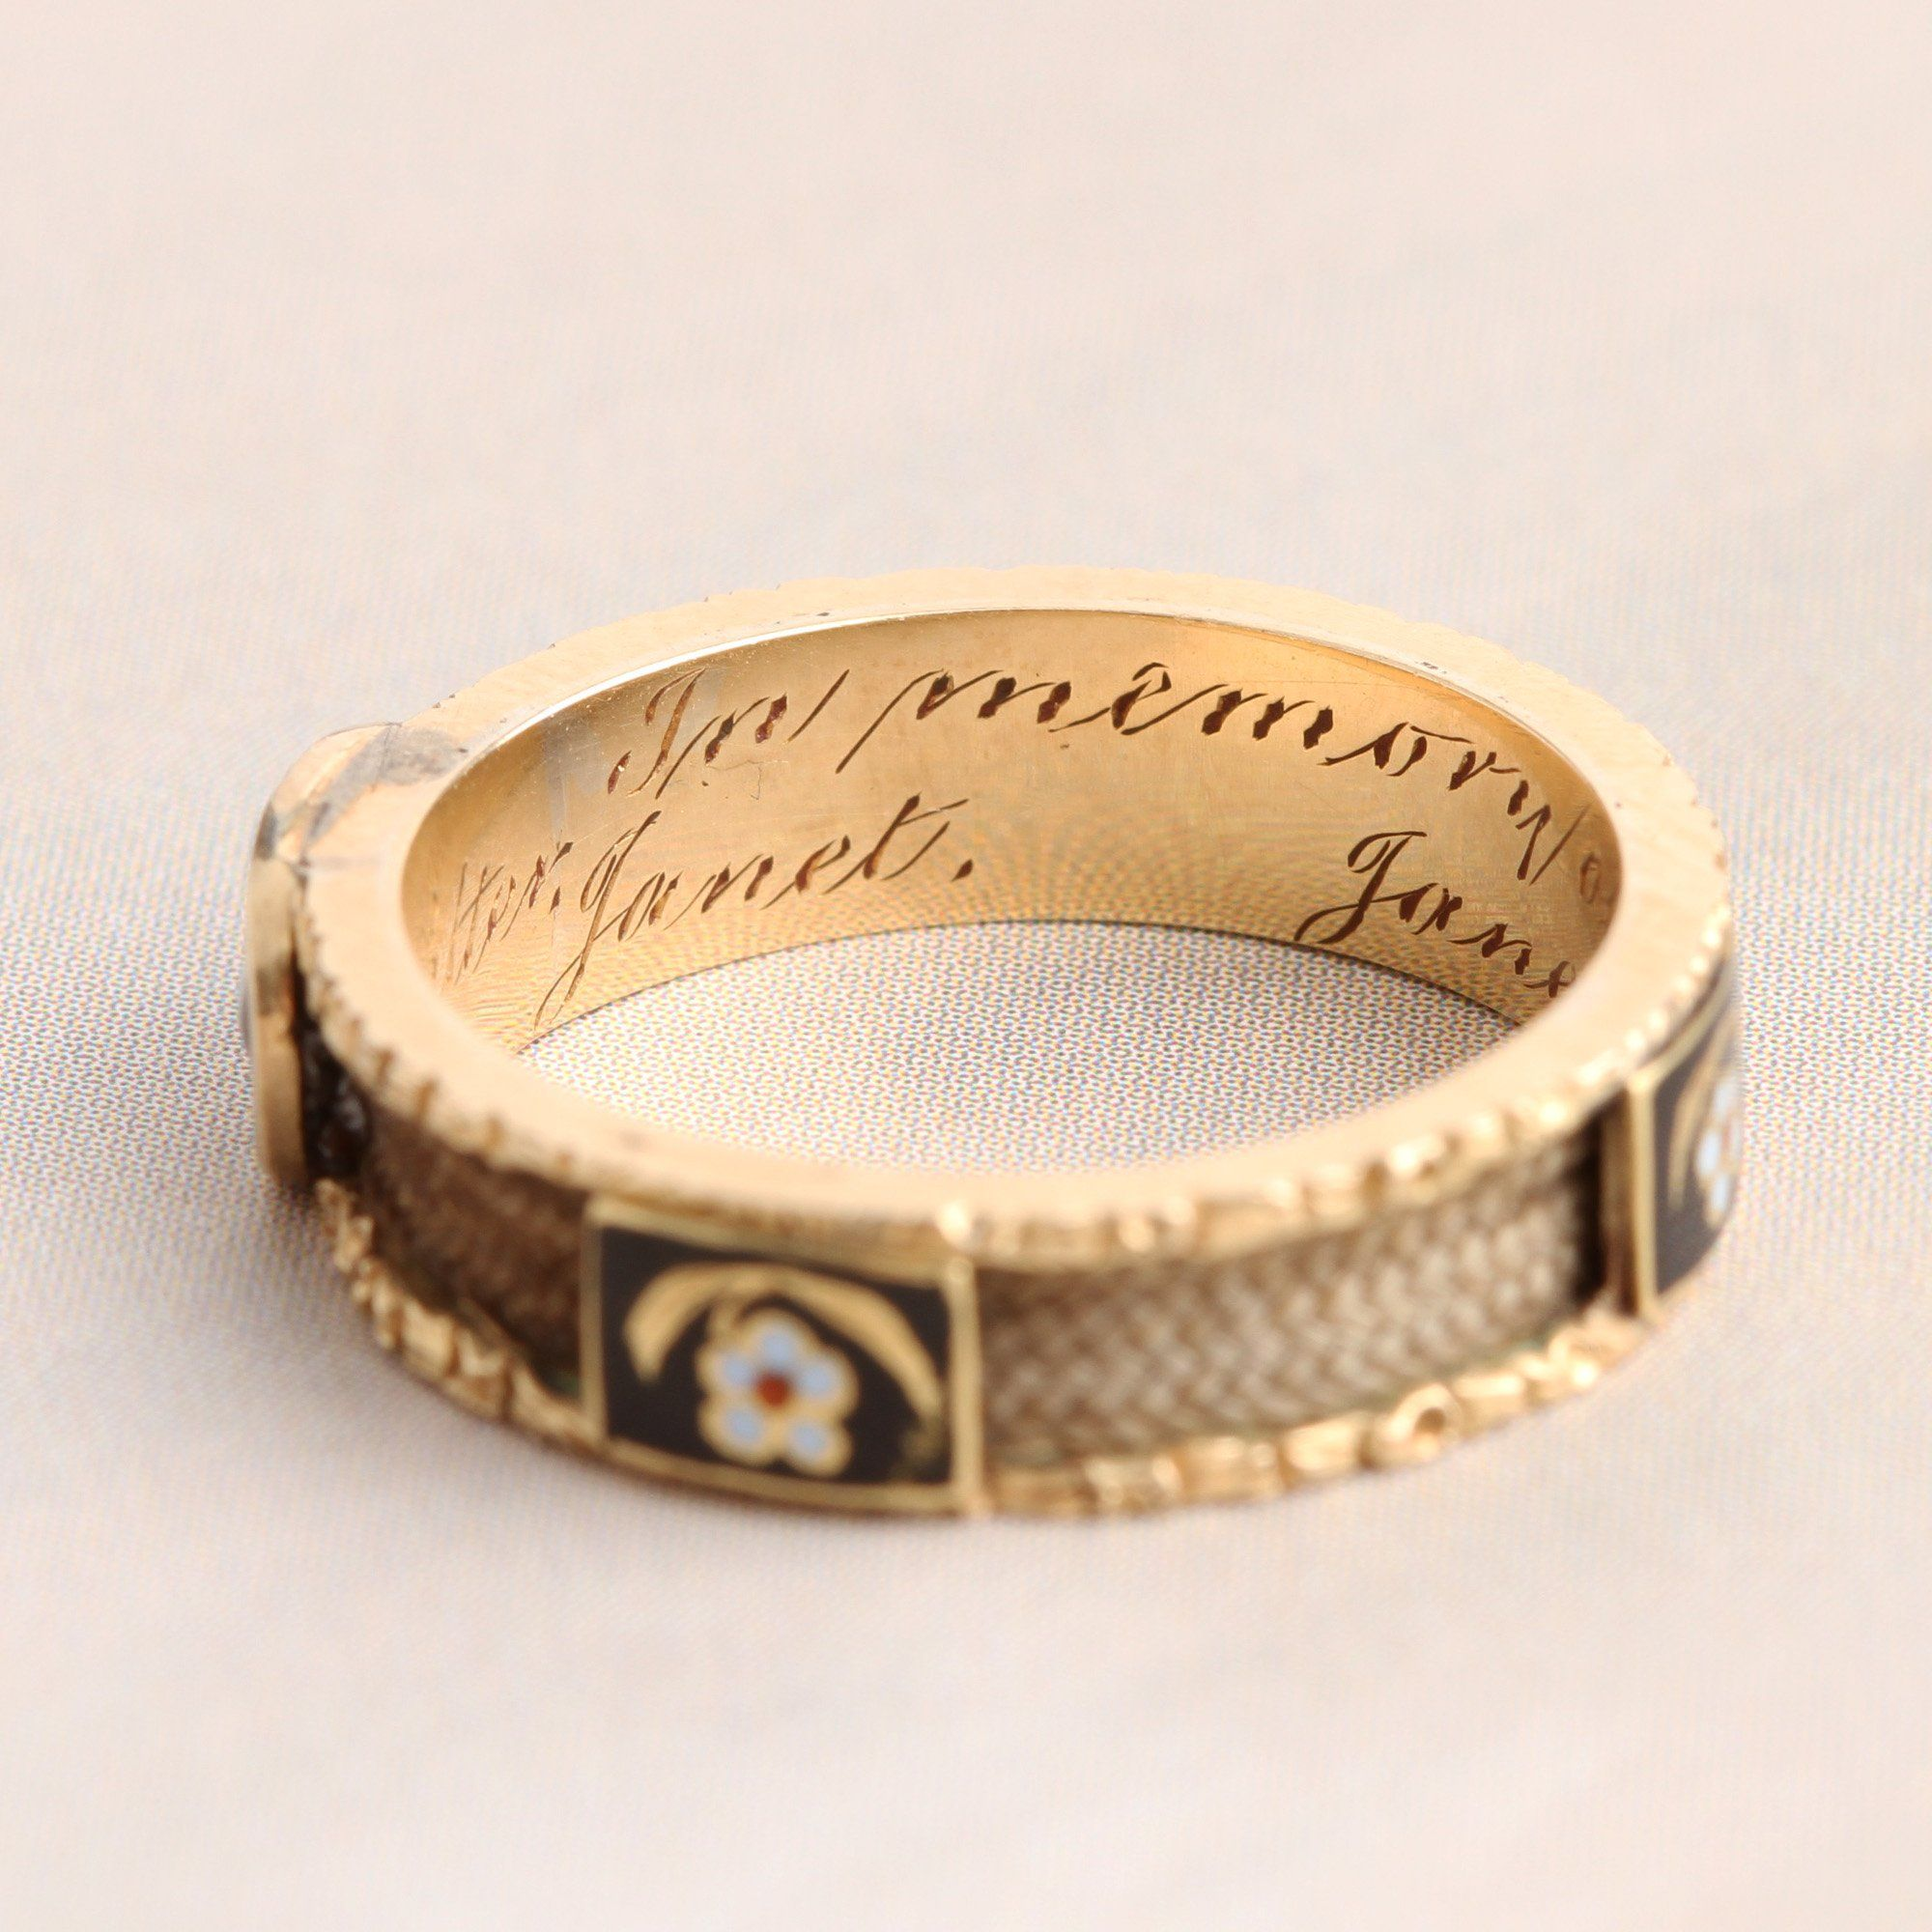 Detail of Victorian Forget Me Not Hair Mourning Band for Five Children